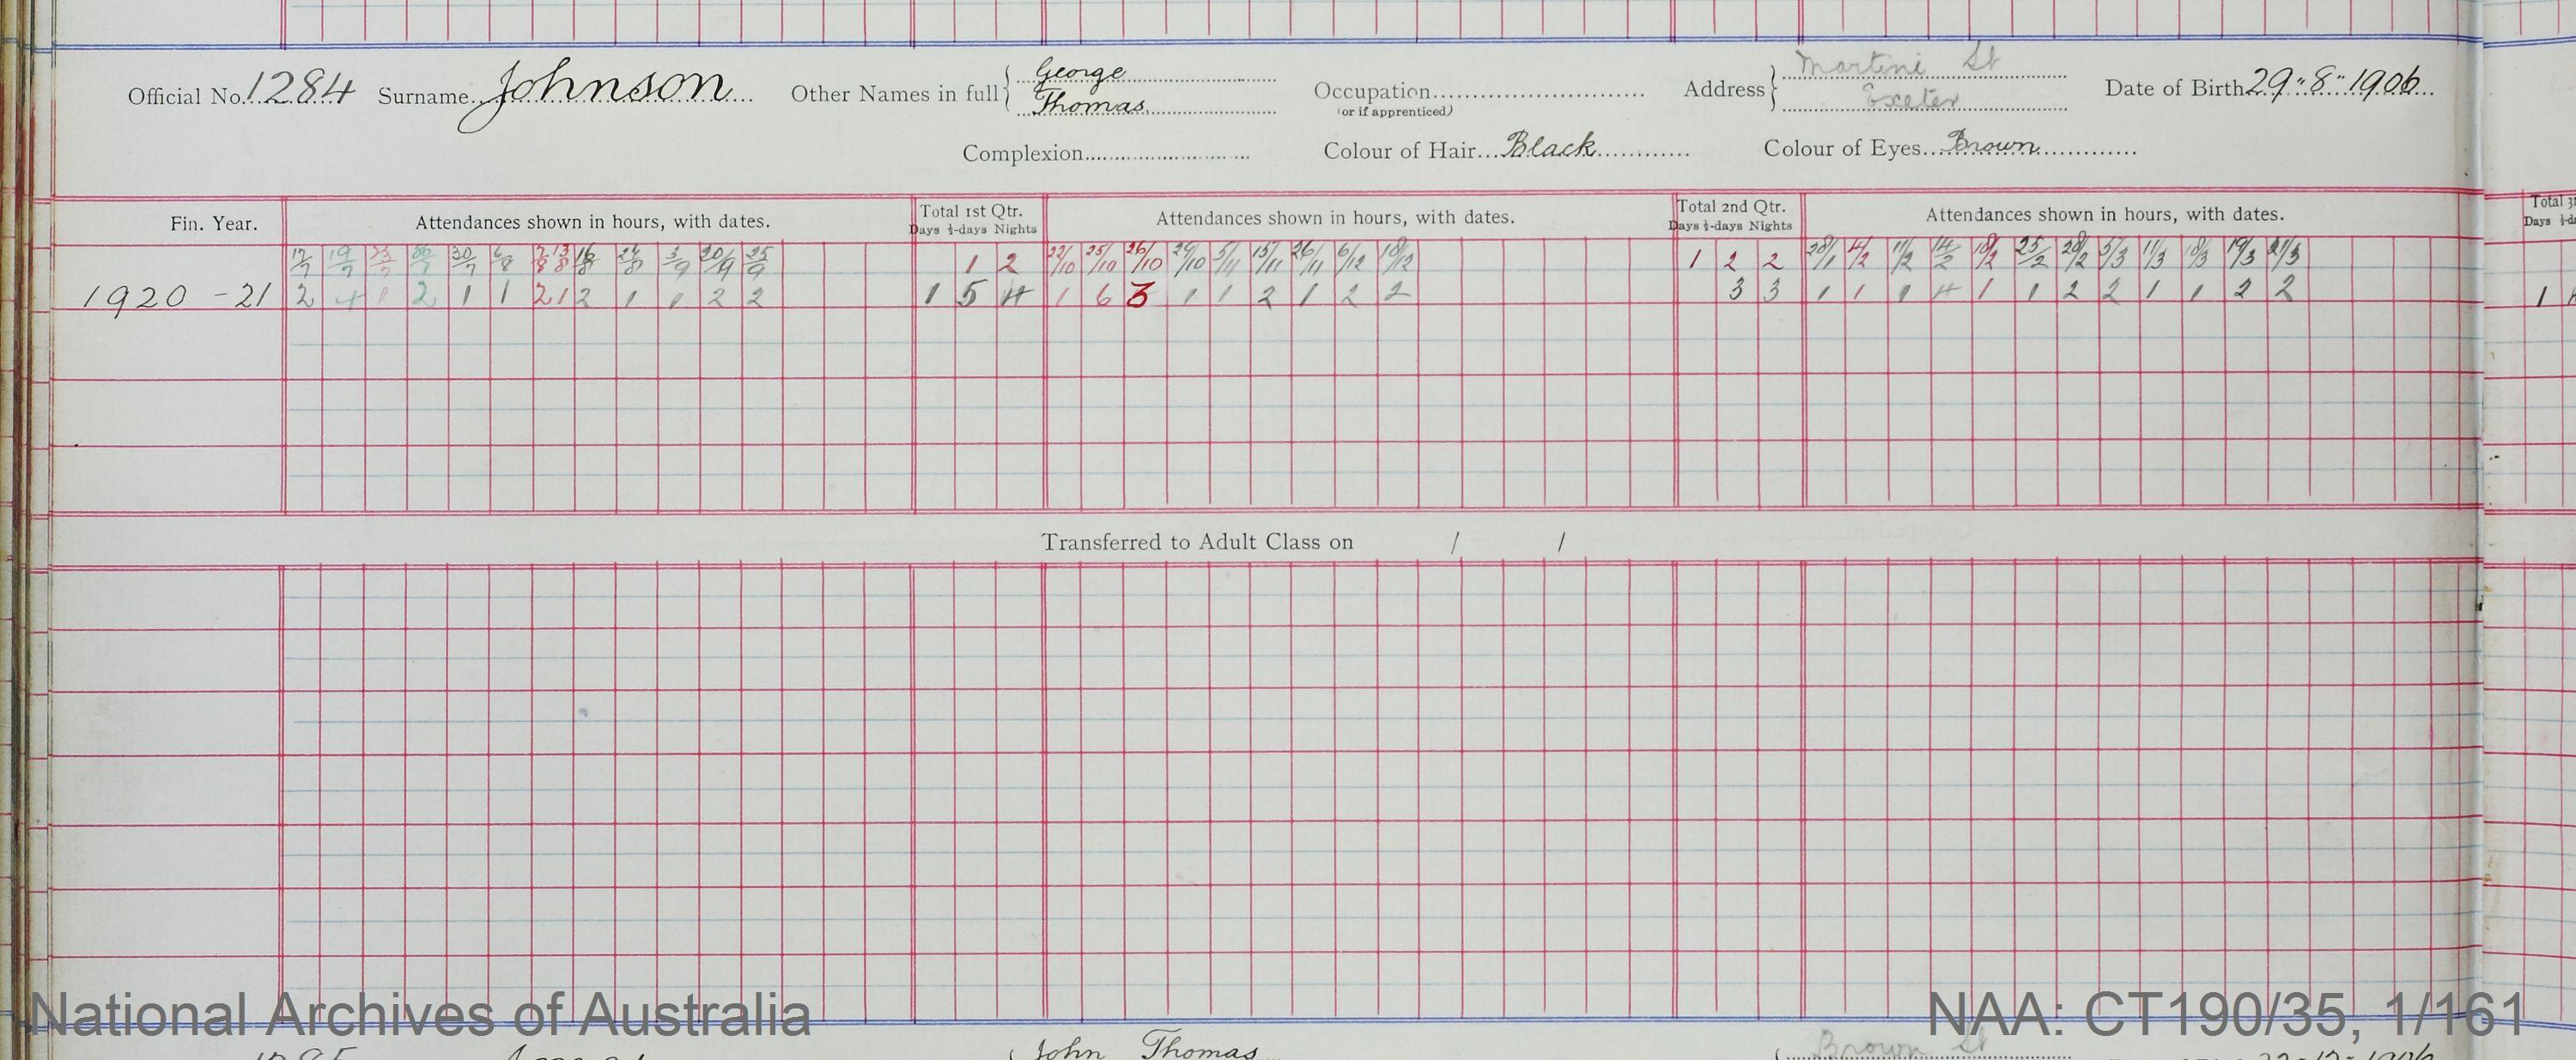 SURNAME - JOHNSON;  GIVEN NAME(S) - George Thomas;  OFFICIAL NUMBER - 1284;  DATE OF BIRTH - 29 August 1906;  PLACE OF BIRTH - [Unknown];  NEXT OF KIN - [Unknown];  SERVICE/STATION - Semaphore, South Australia;  REGISTRATION DATE - 2 January 1920